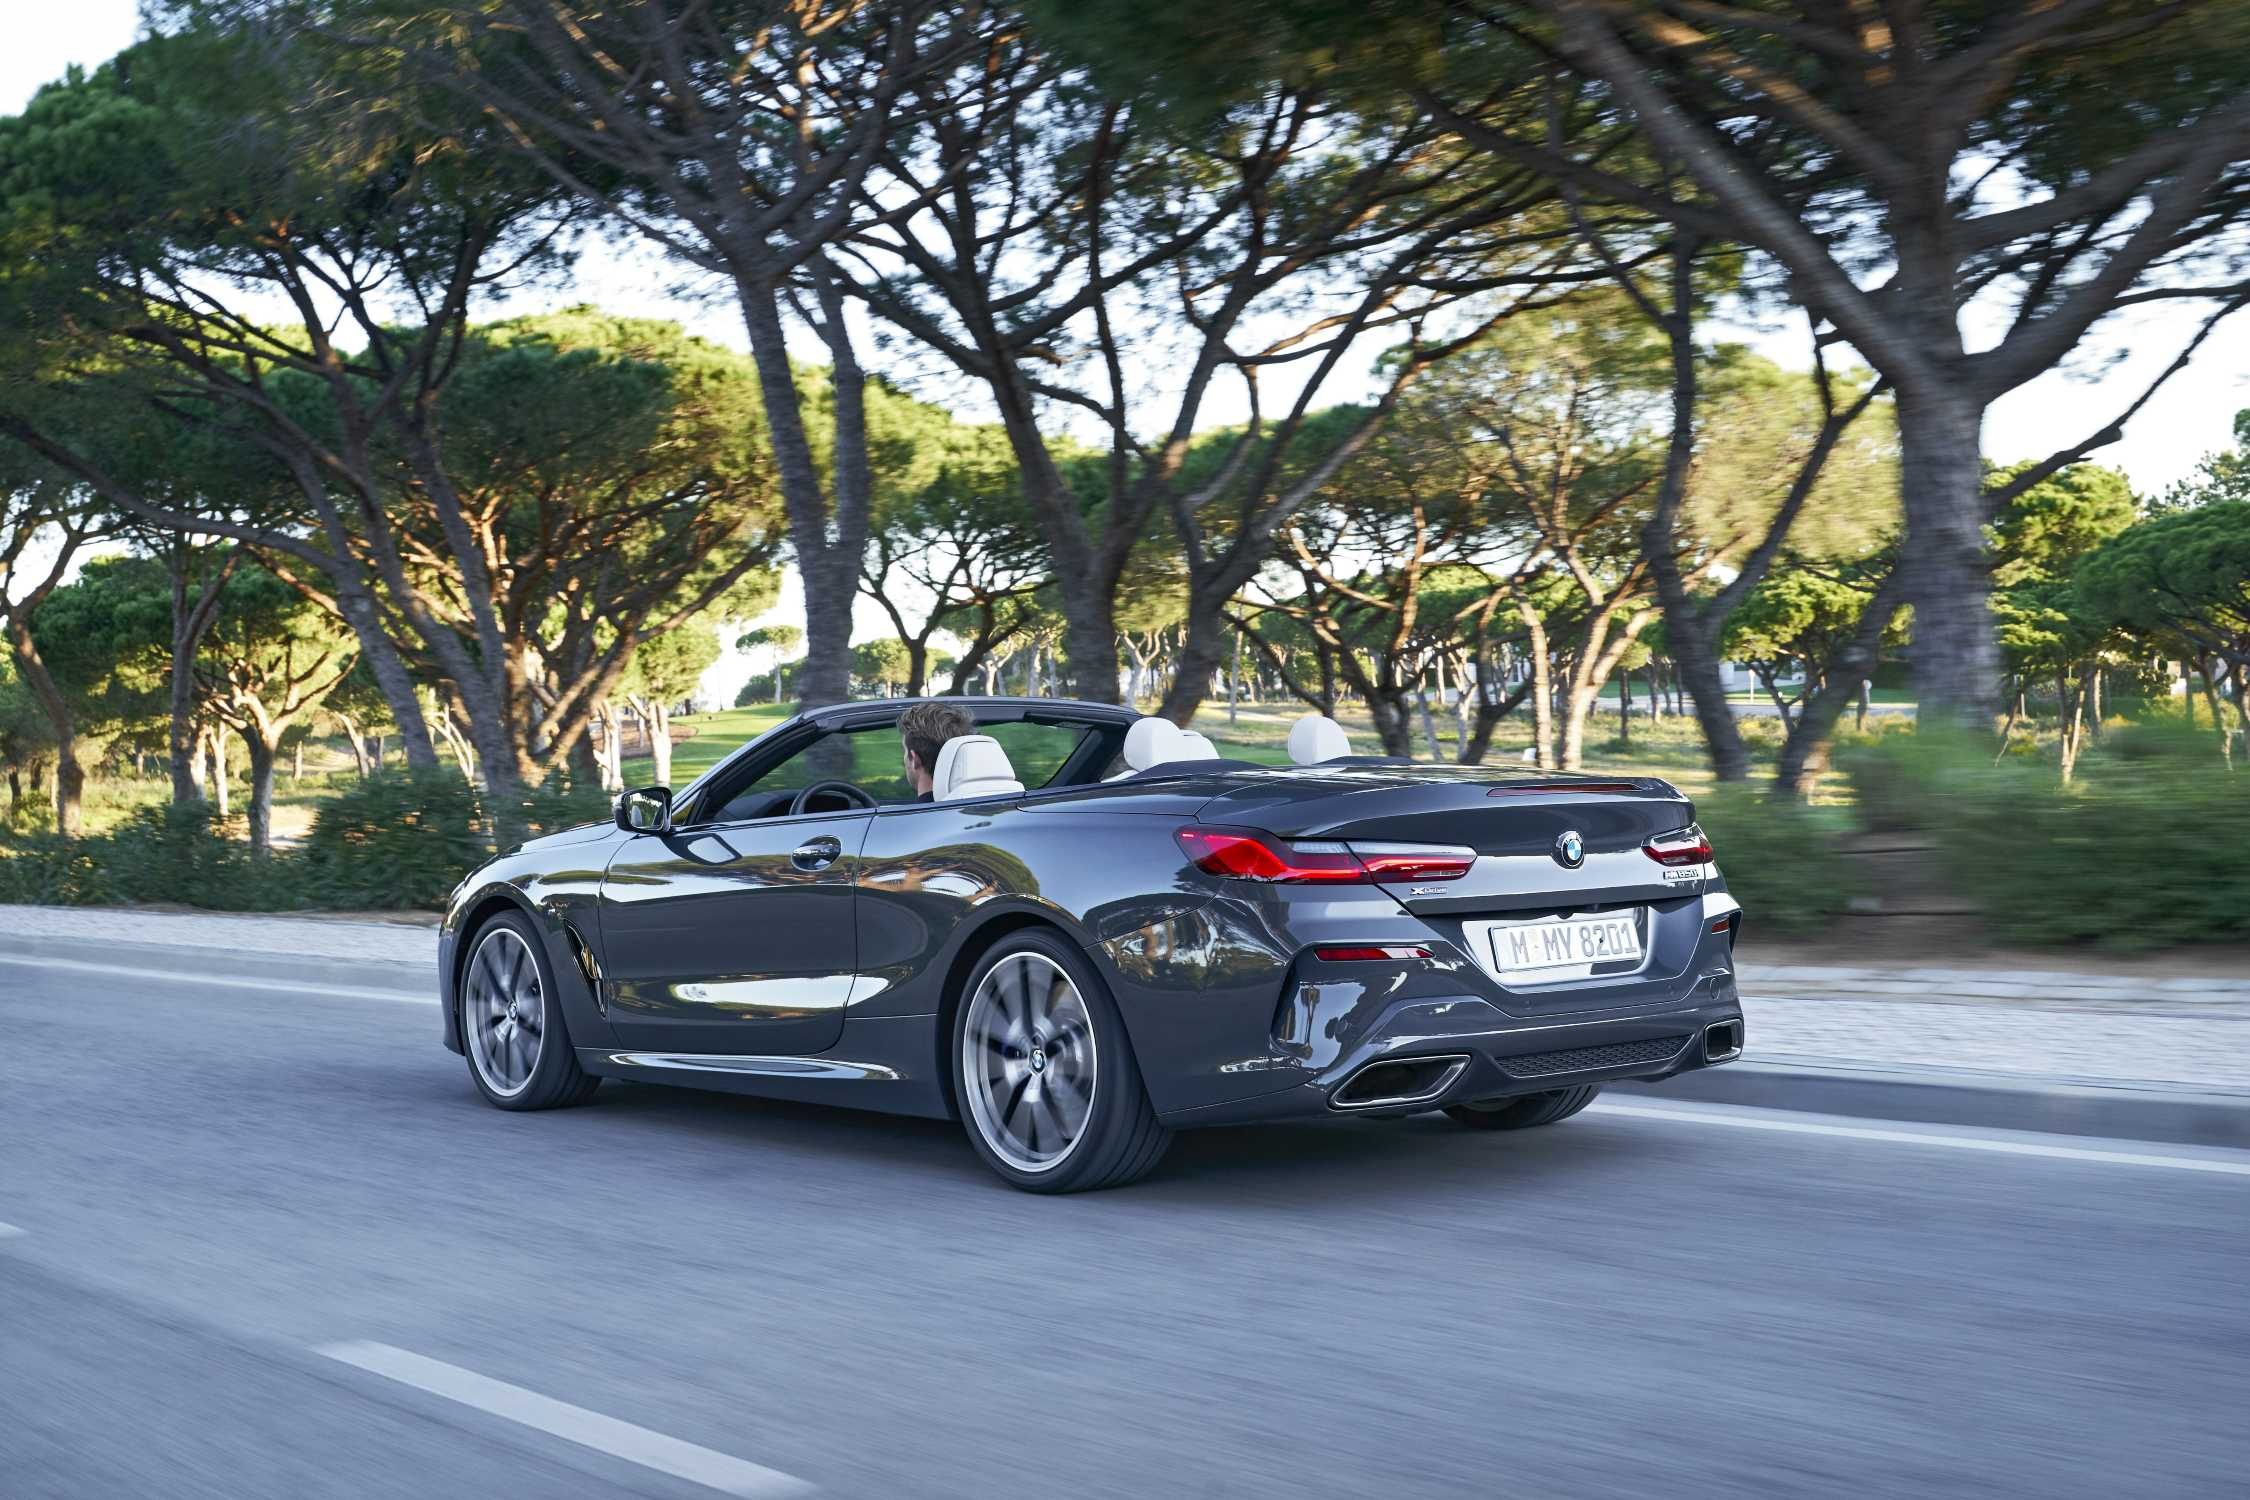 P90343242-the-new-bmw-m850i-xdrive-convertible-in-colour-dravit-grey-metallic-and-20-m-light-alloy-wheels-y-sp-2250px